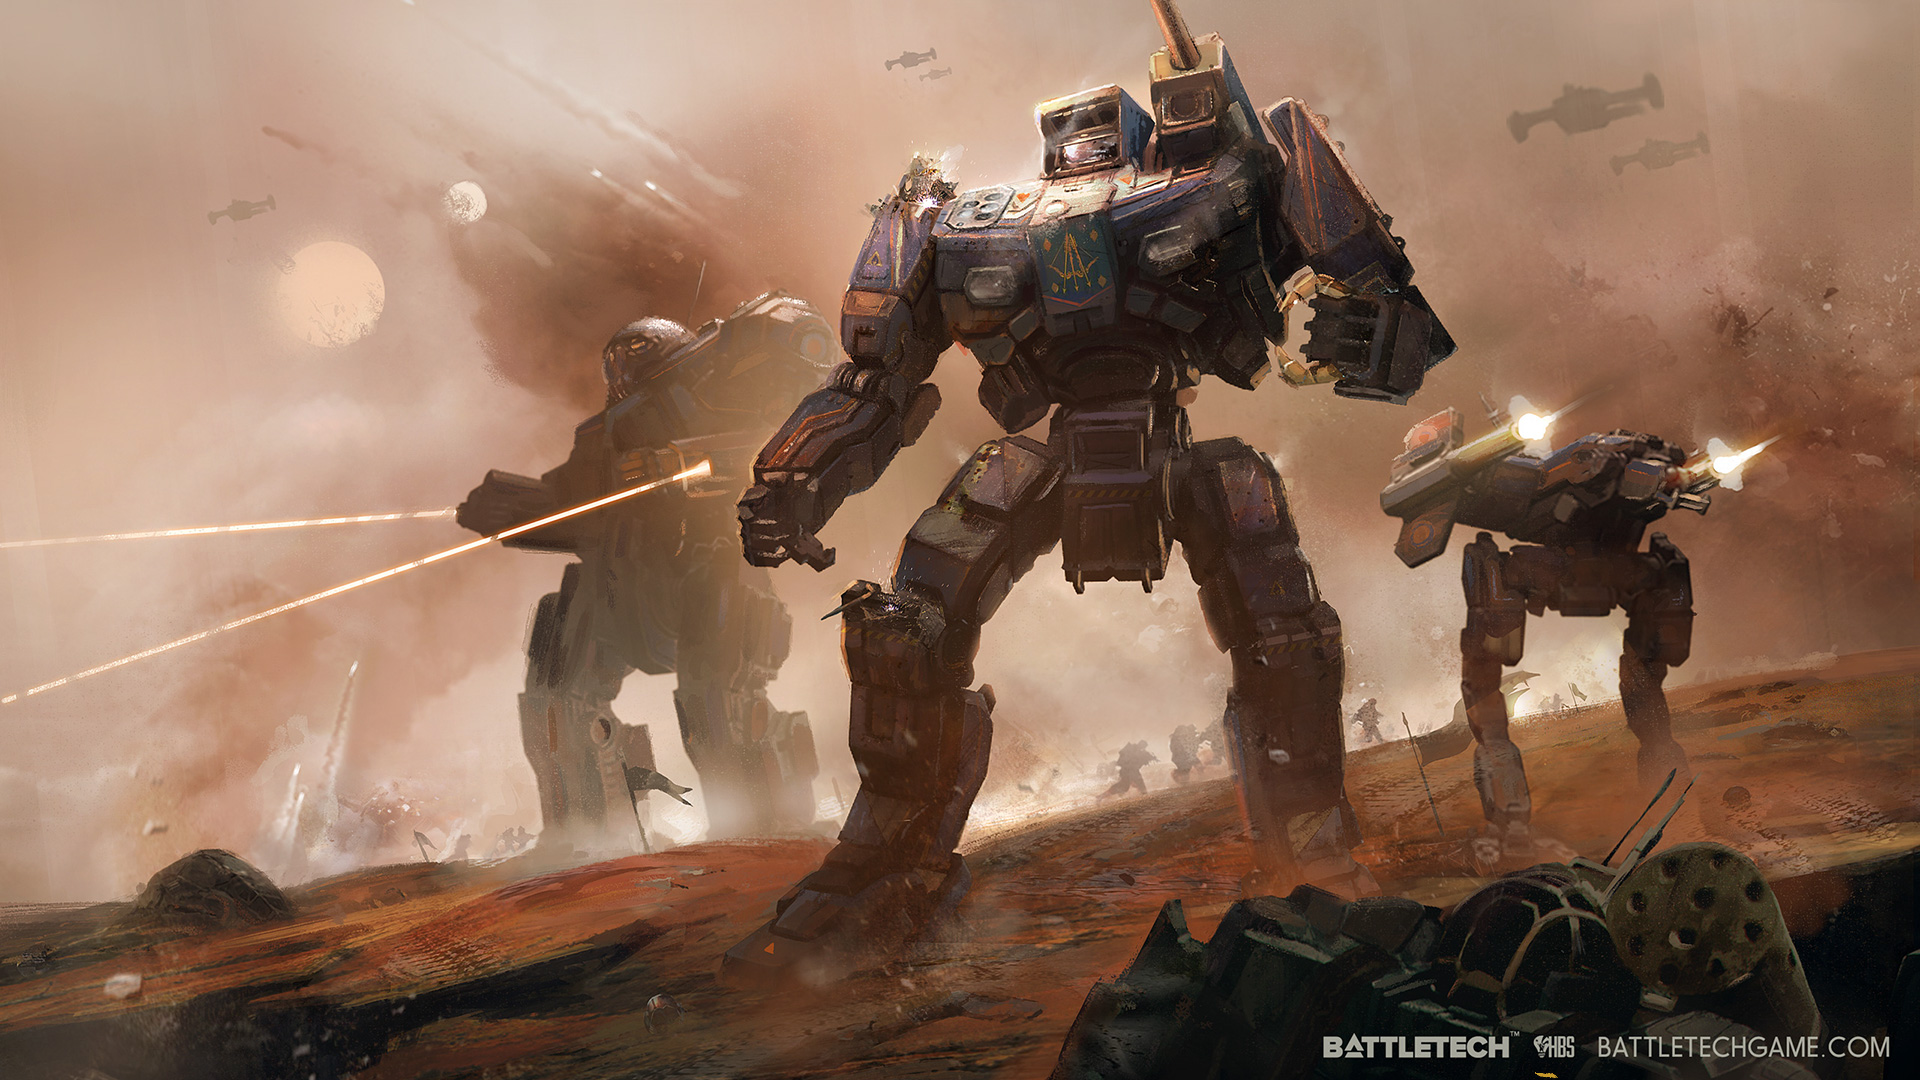 Games Like 'BattleTech' Are Slow For a Reason